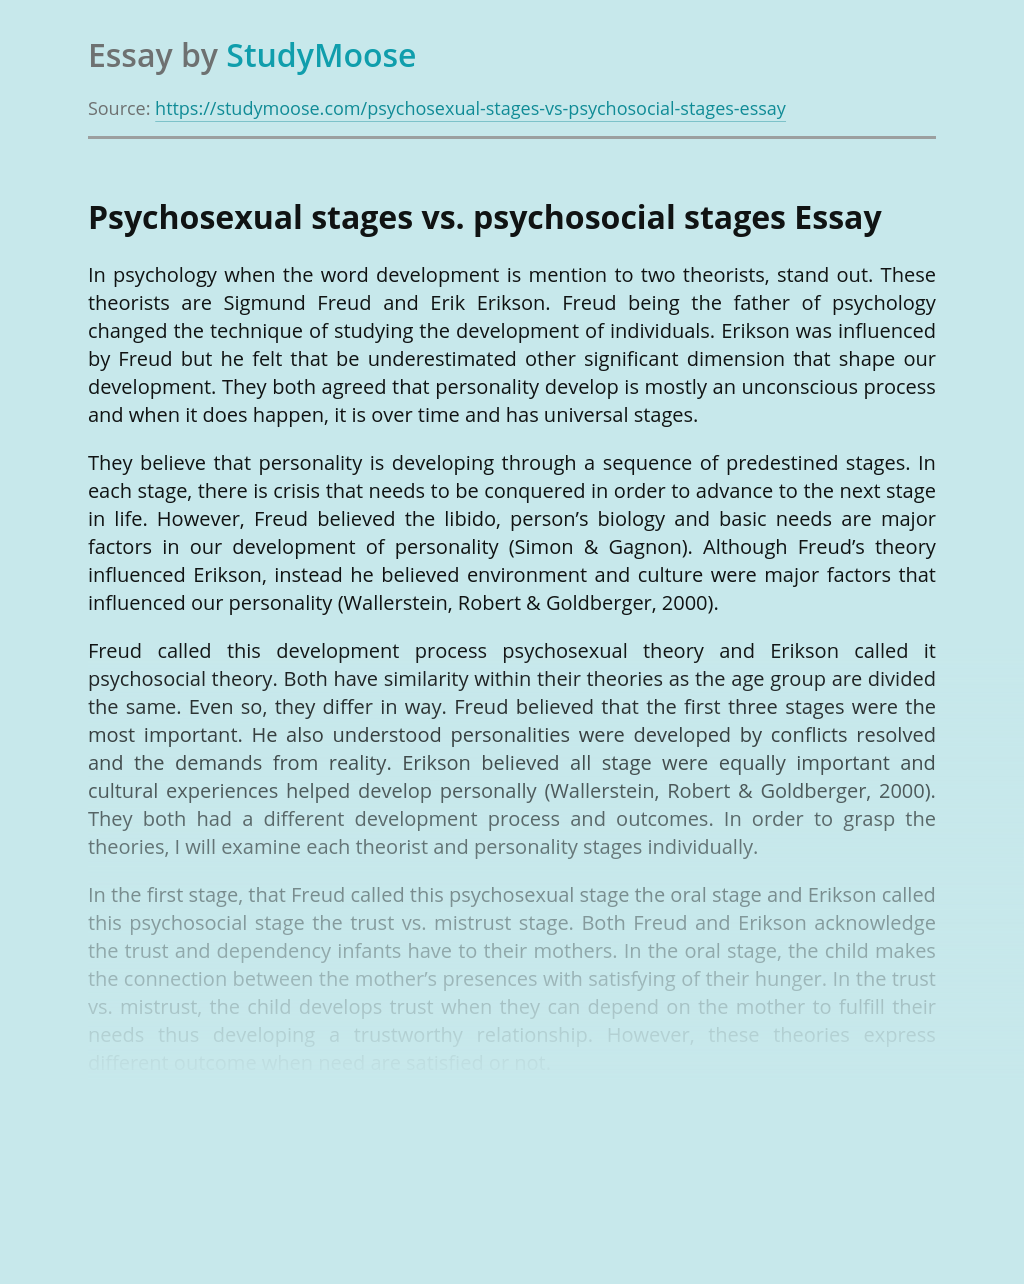 Psychosexual stages vs. psychosocial stages